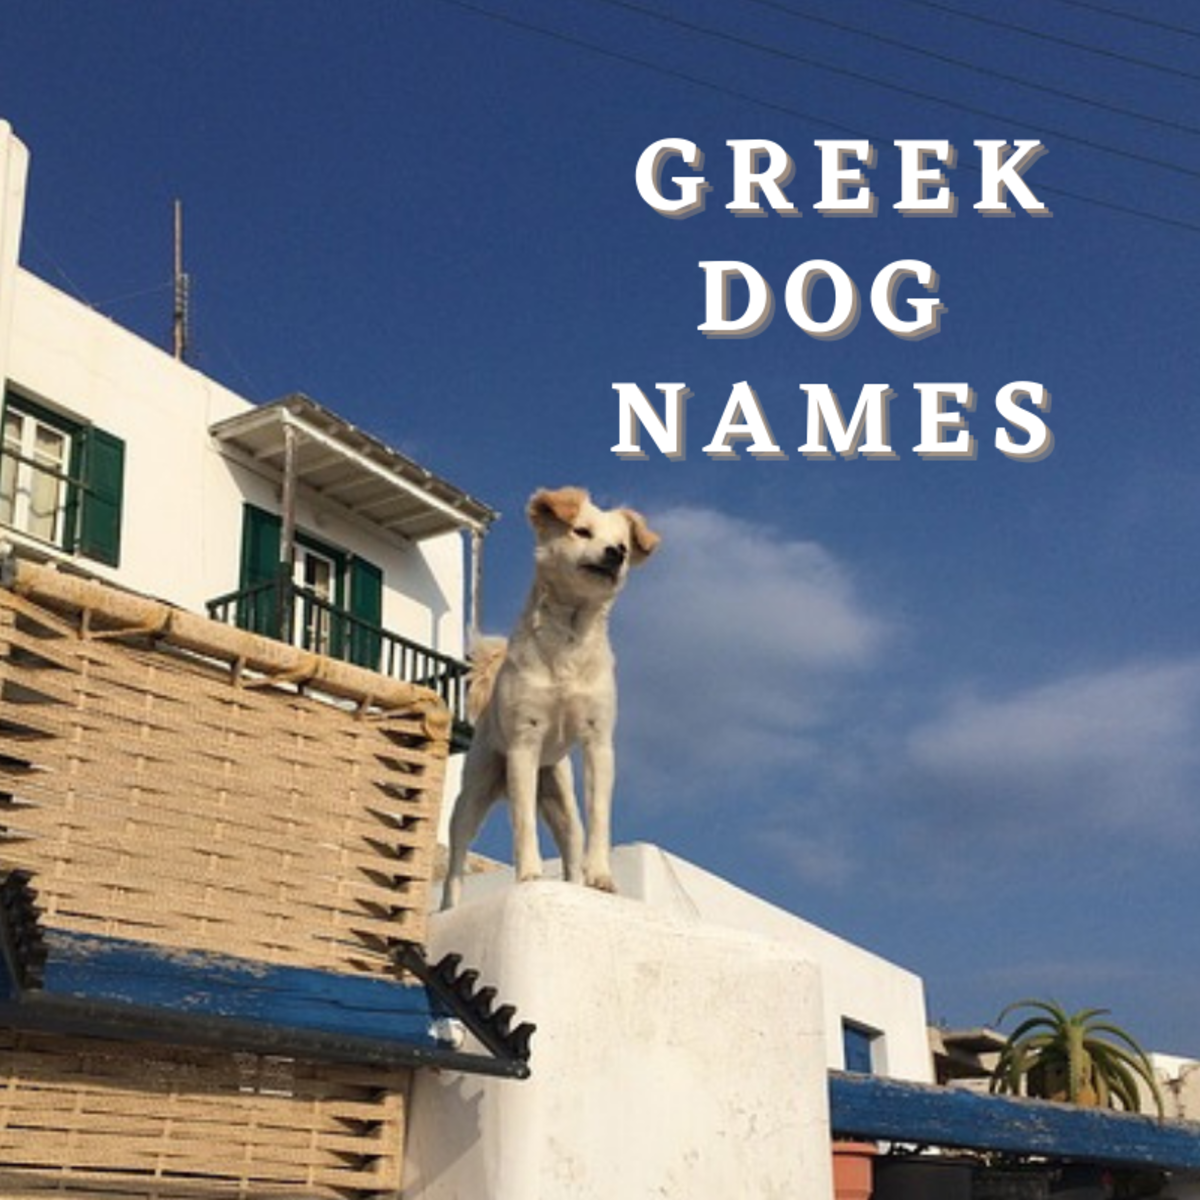 Dog watching others in Greece